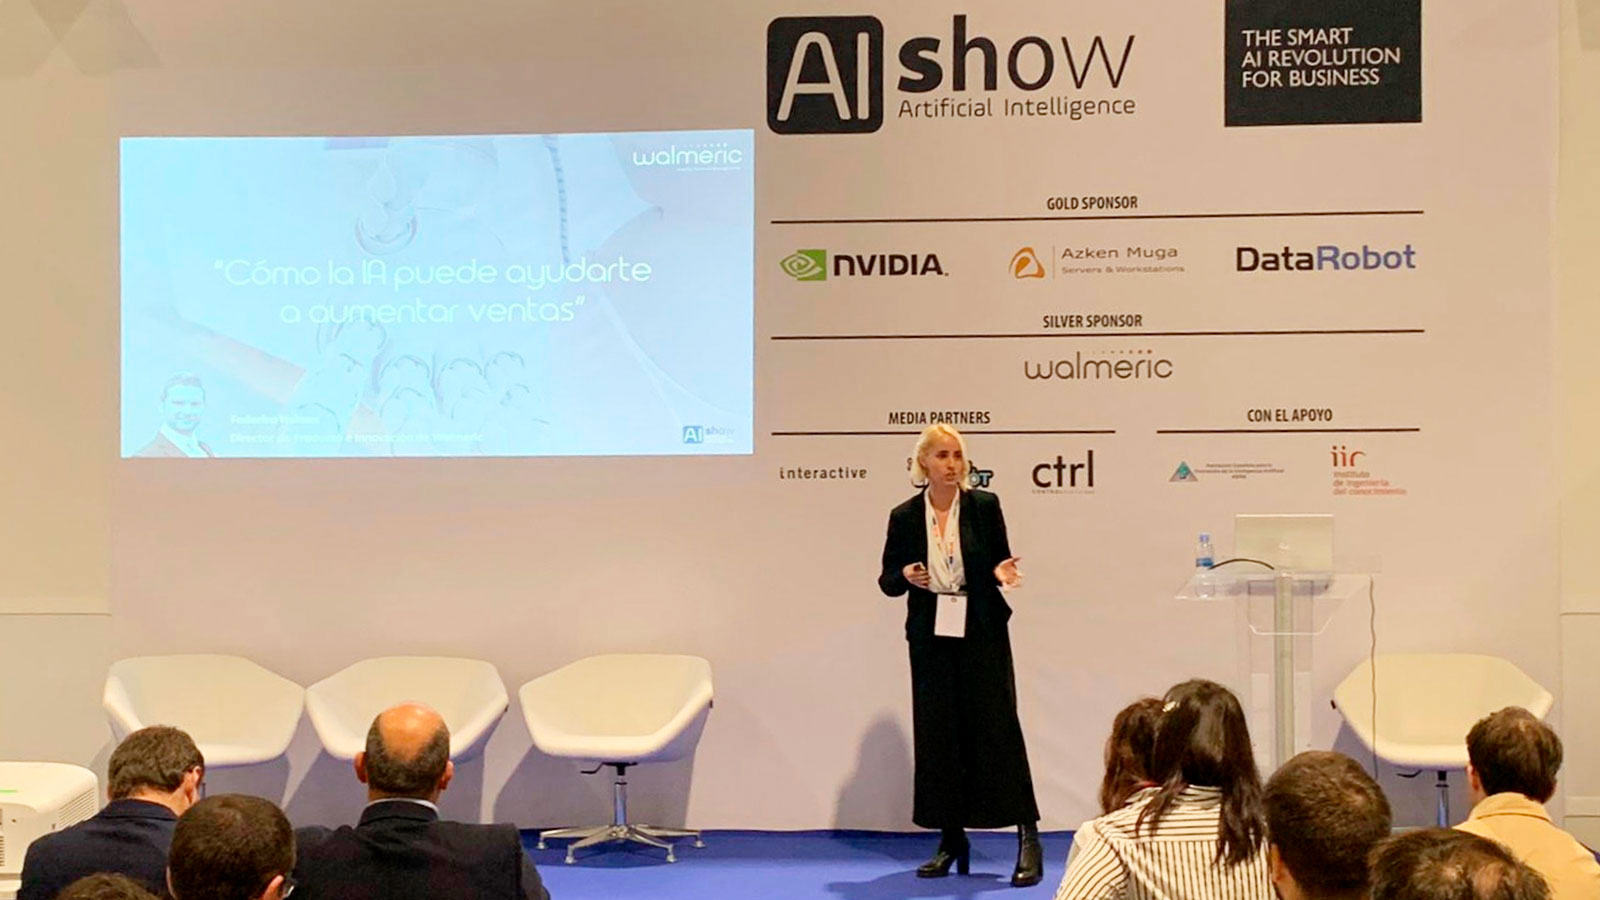 Irene Medina, Marketing Directo at Walmeric, giving a talk in AIshow